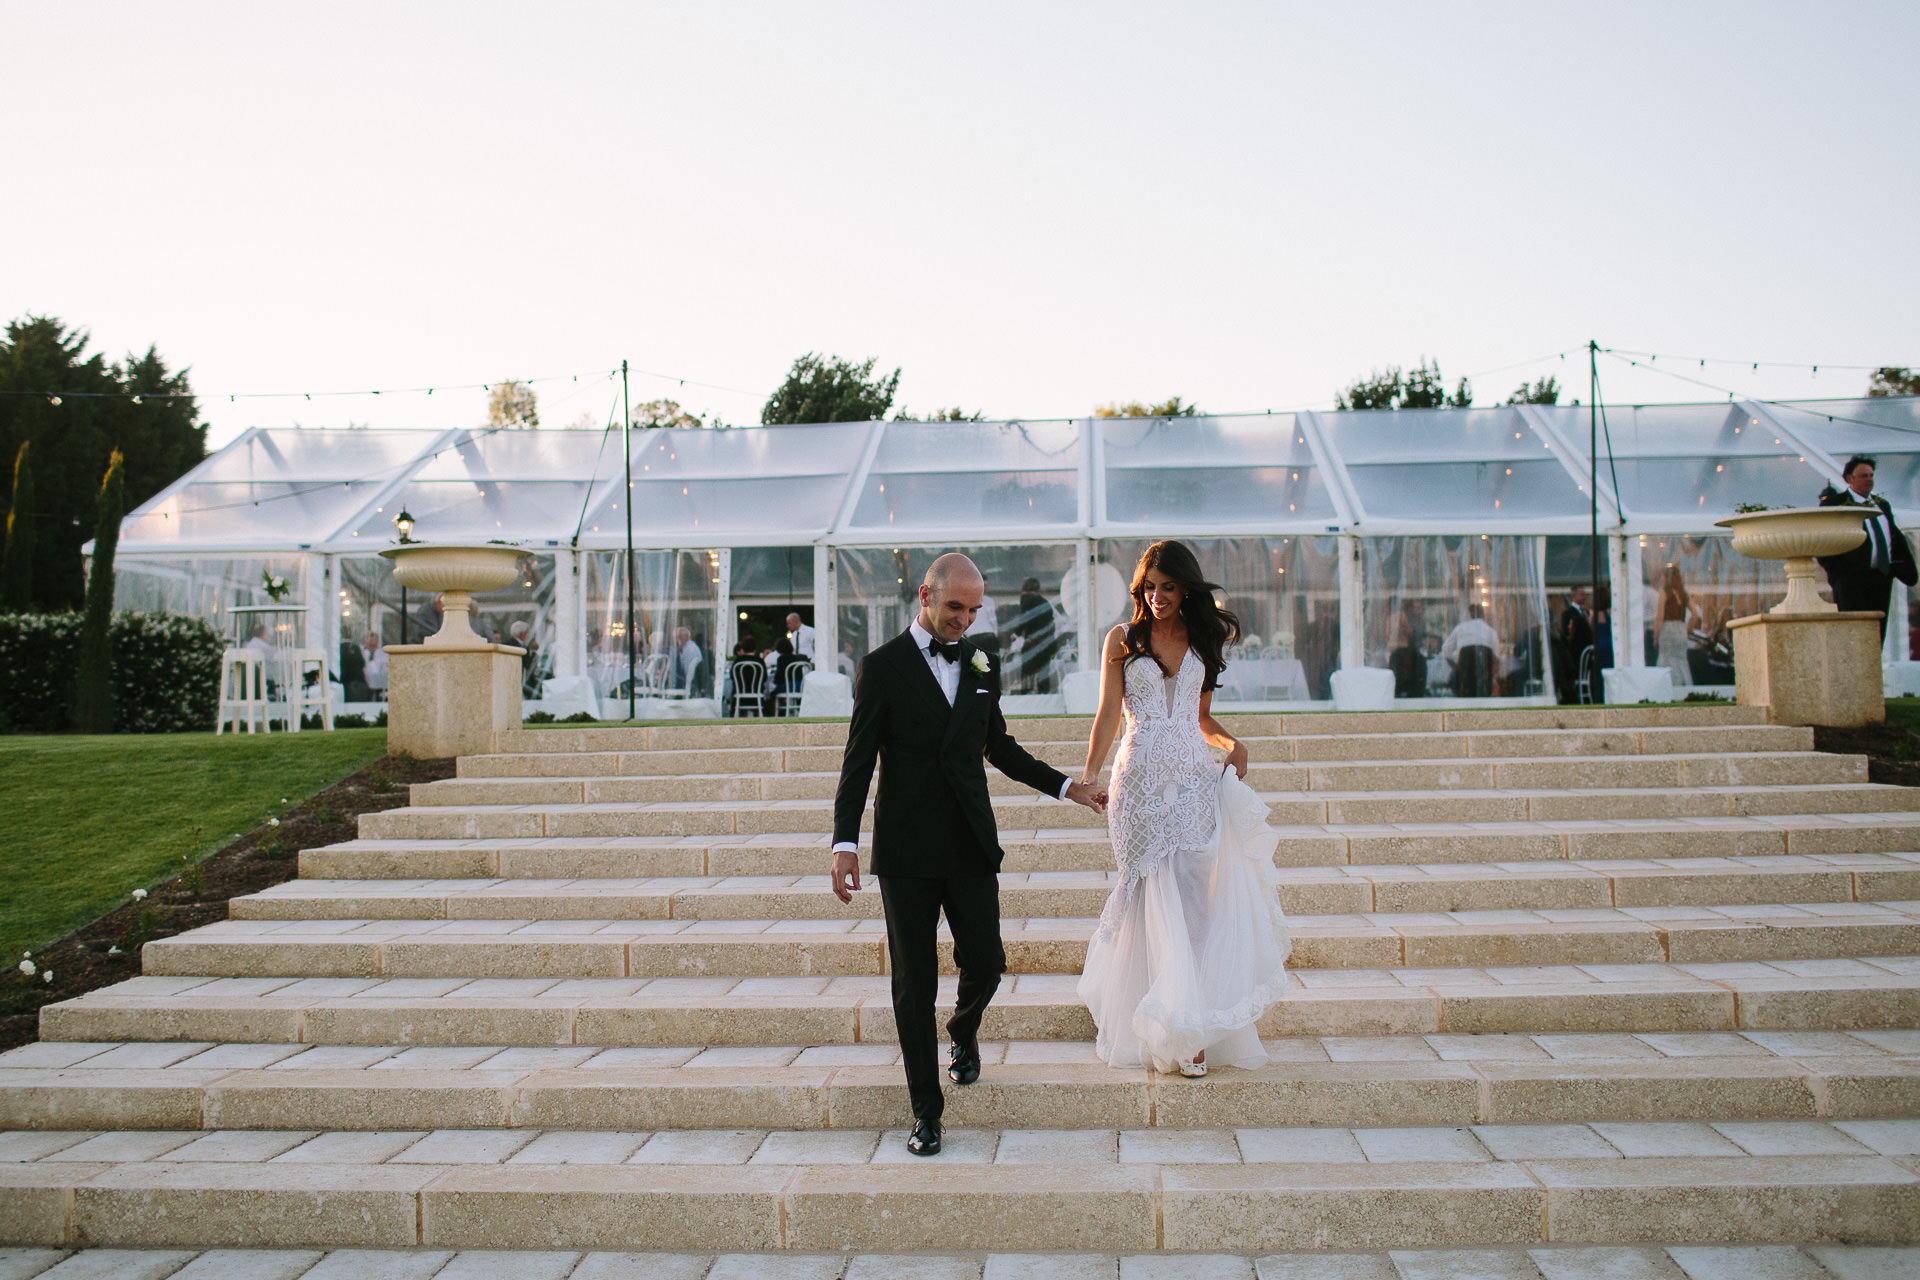 Mandalay House Wedding reception in Marquee with Dapper groom in black tie